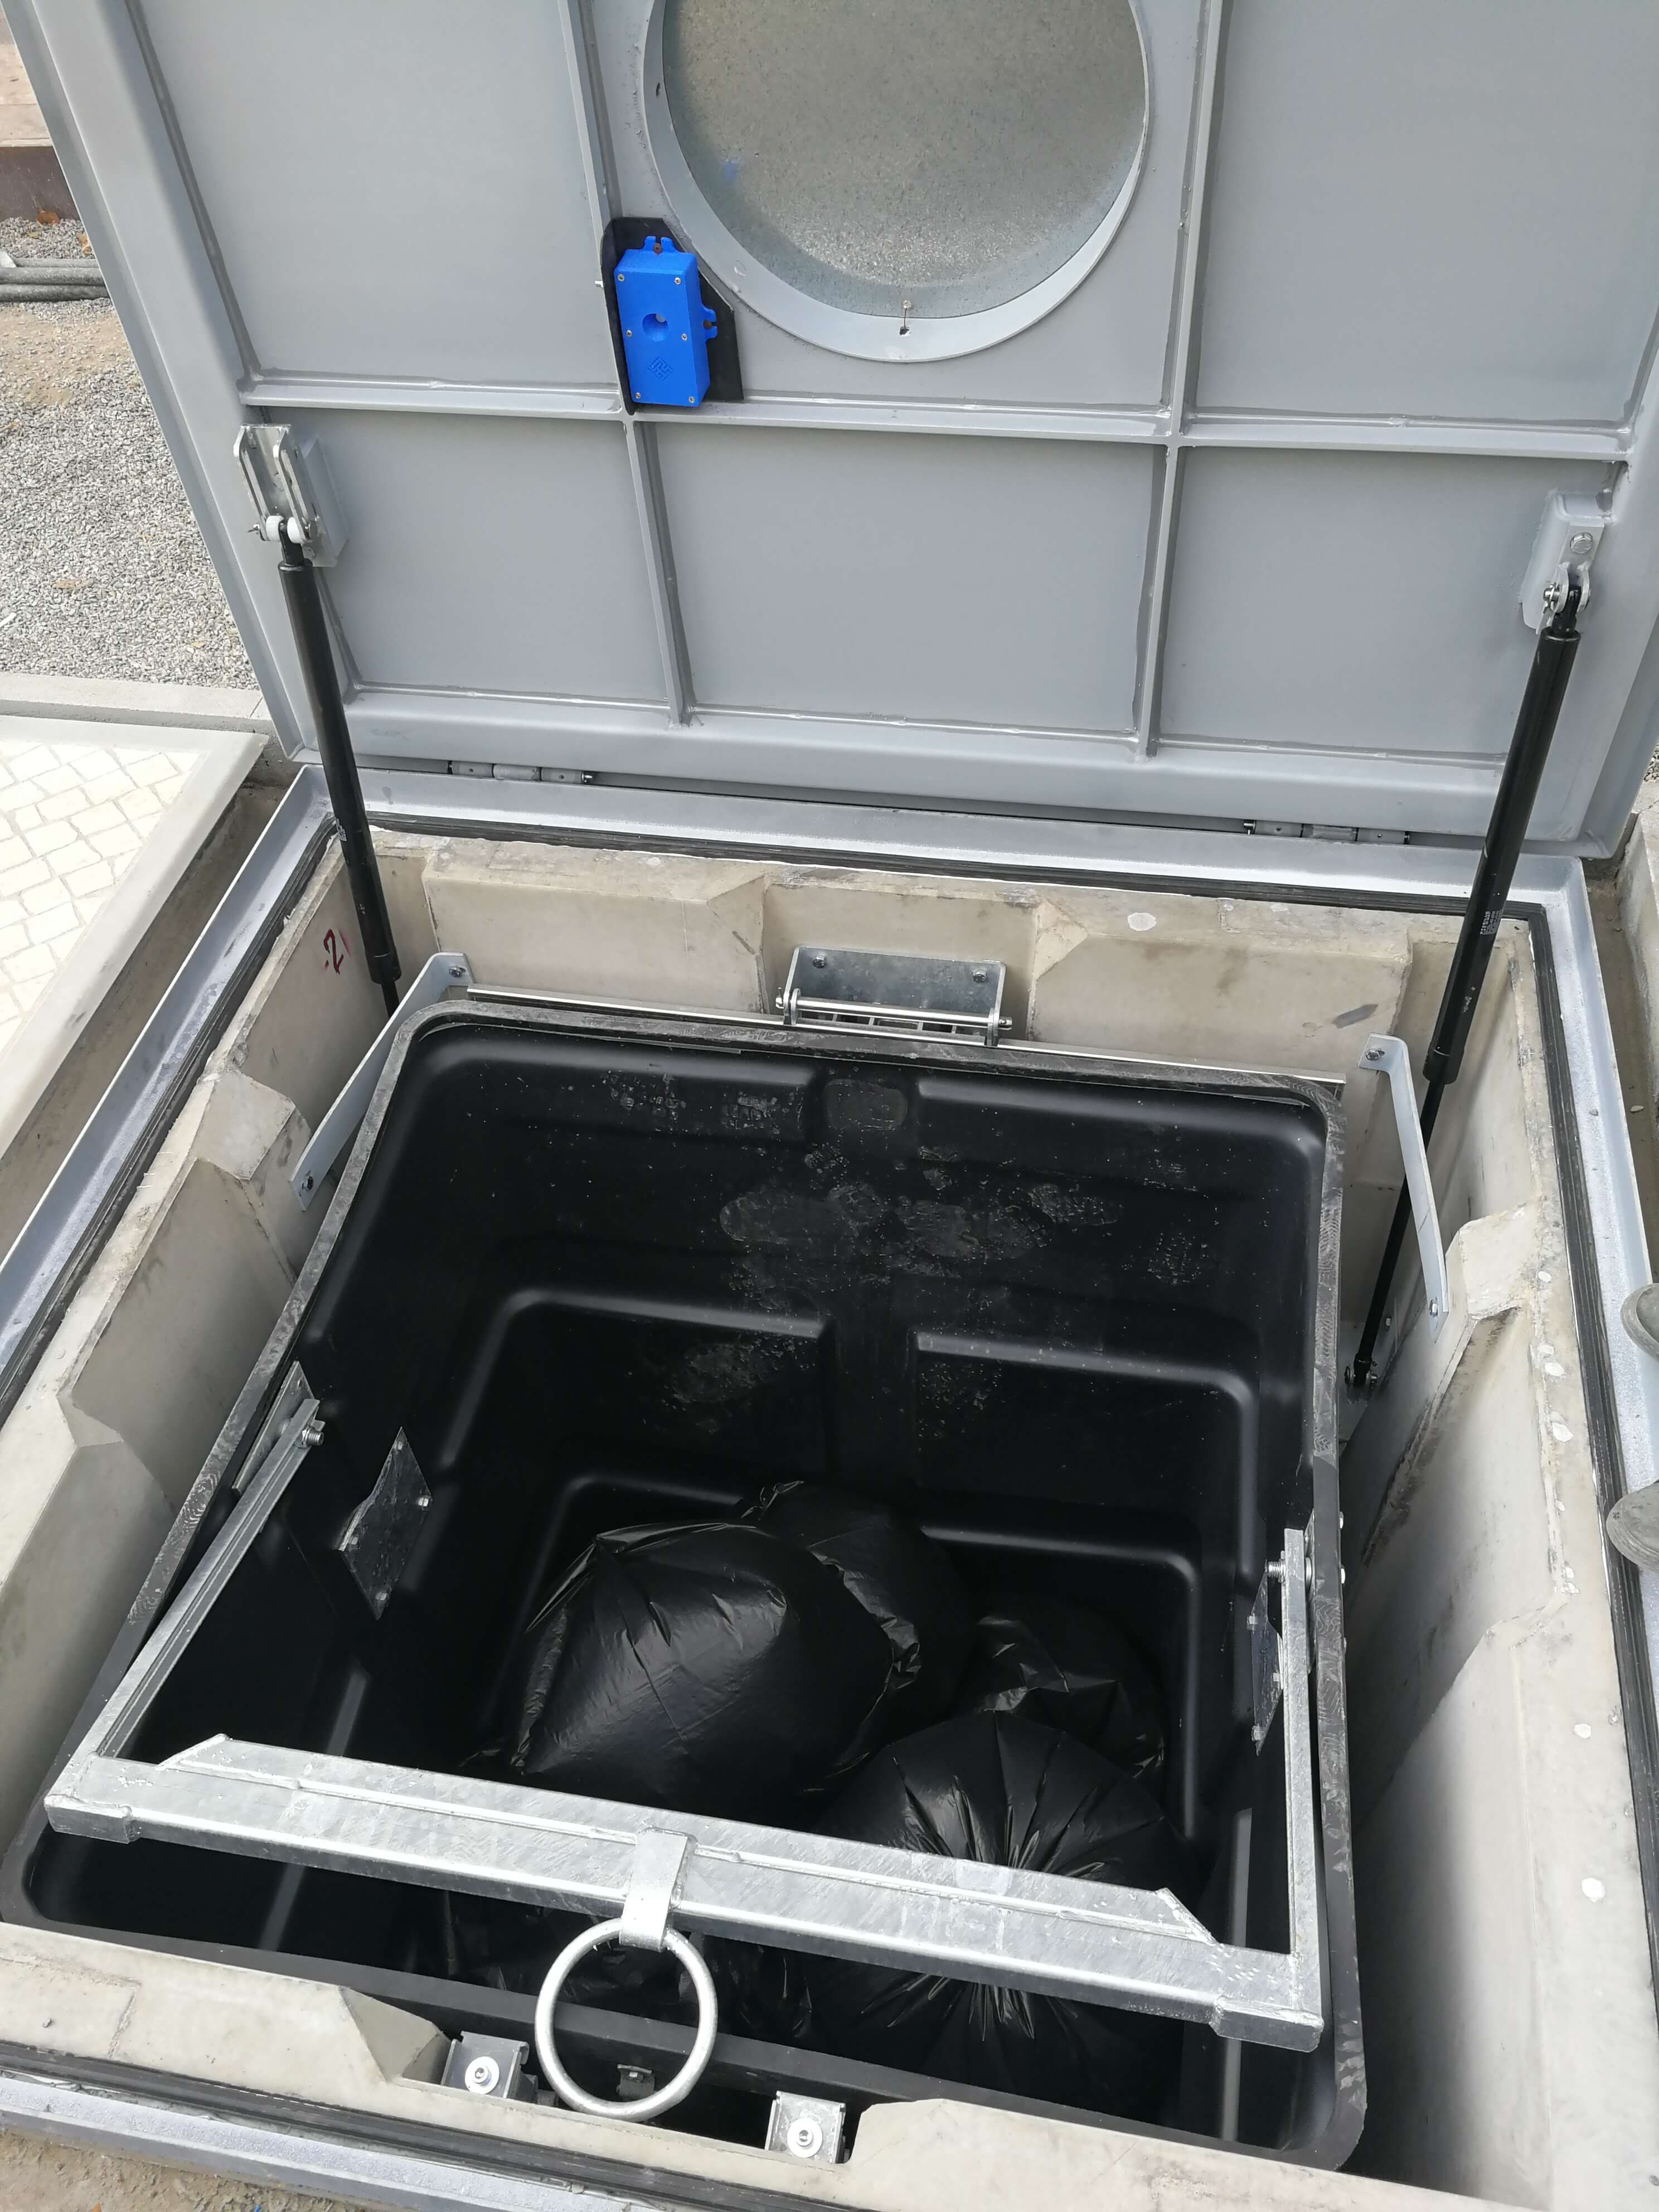 Underground garbage container with the custom-made sensor